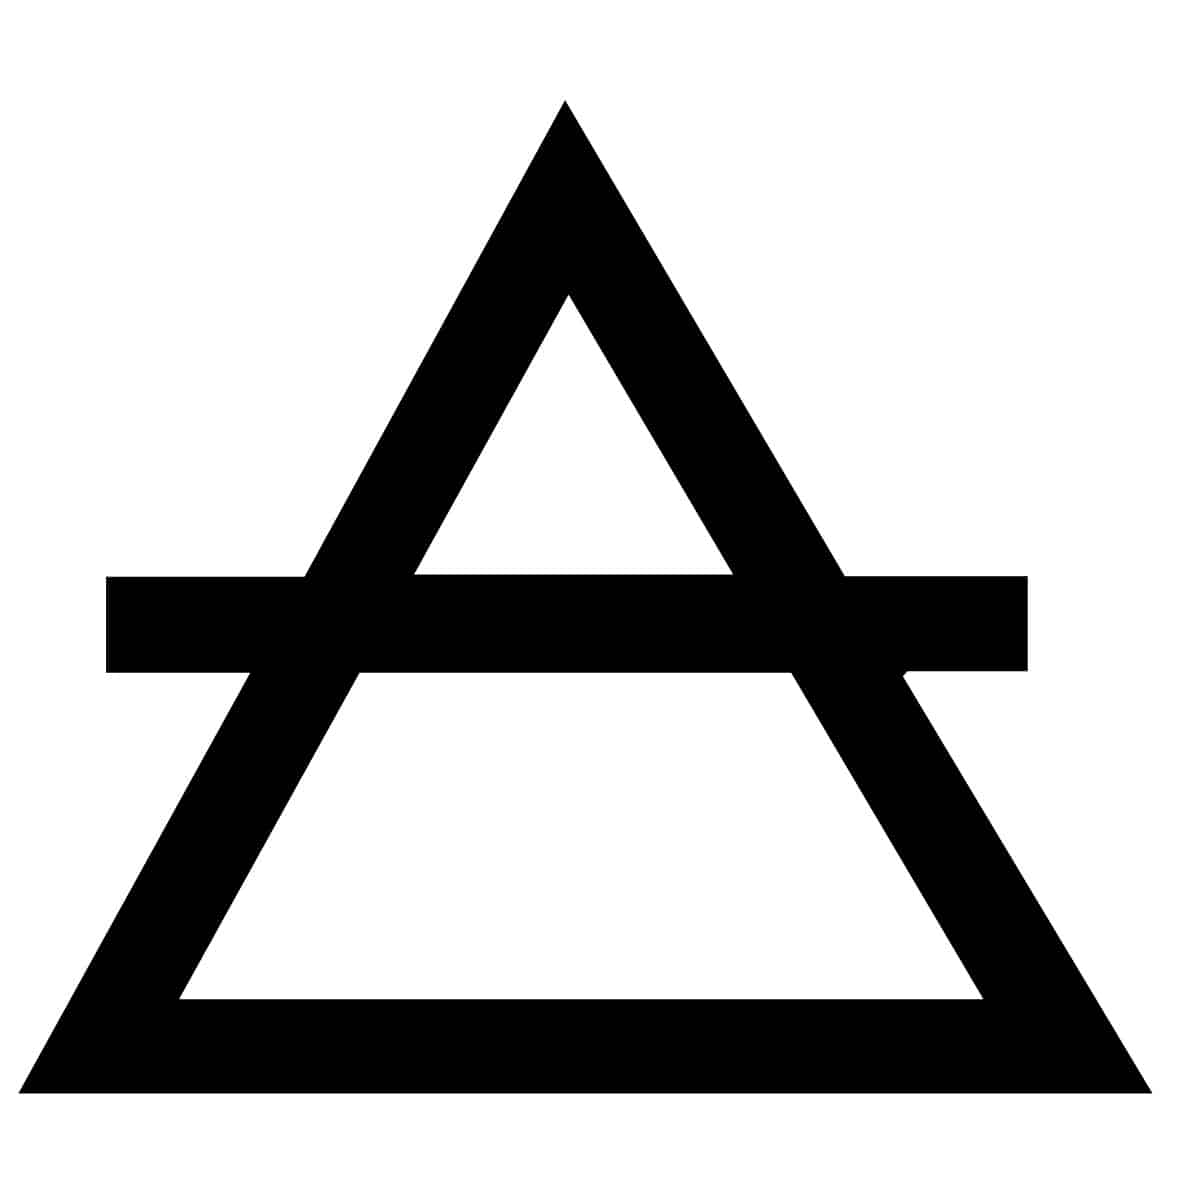 Alchemy Symbols and Their Meanings - The Extended List of Alchemical Symbols